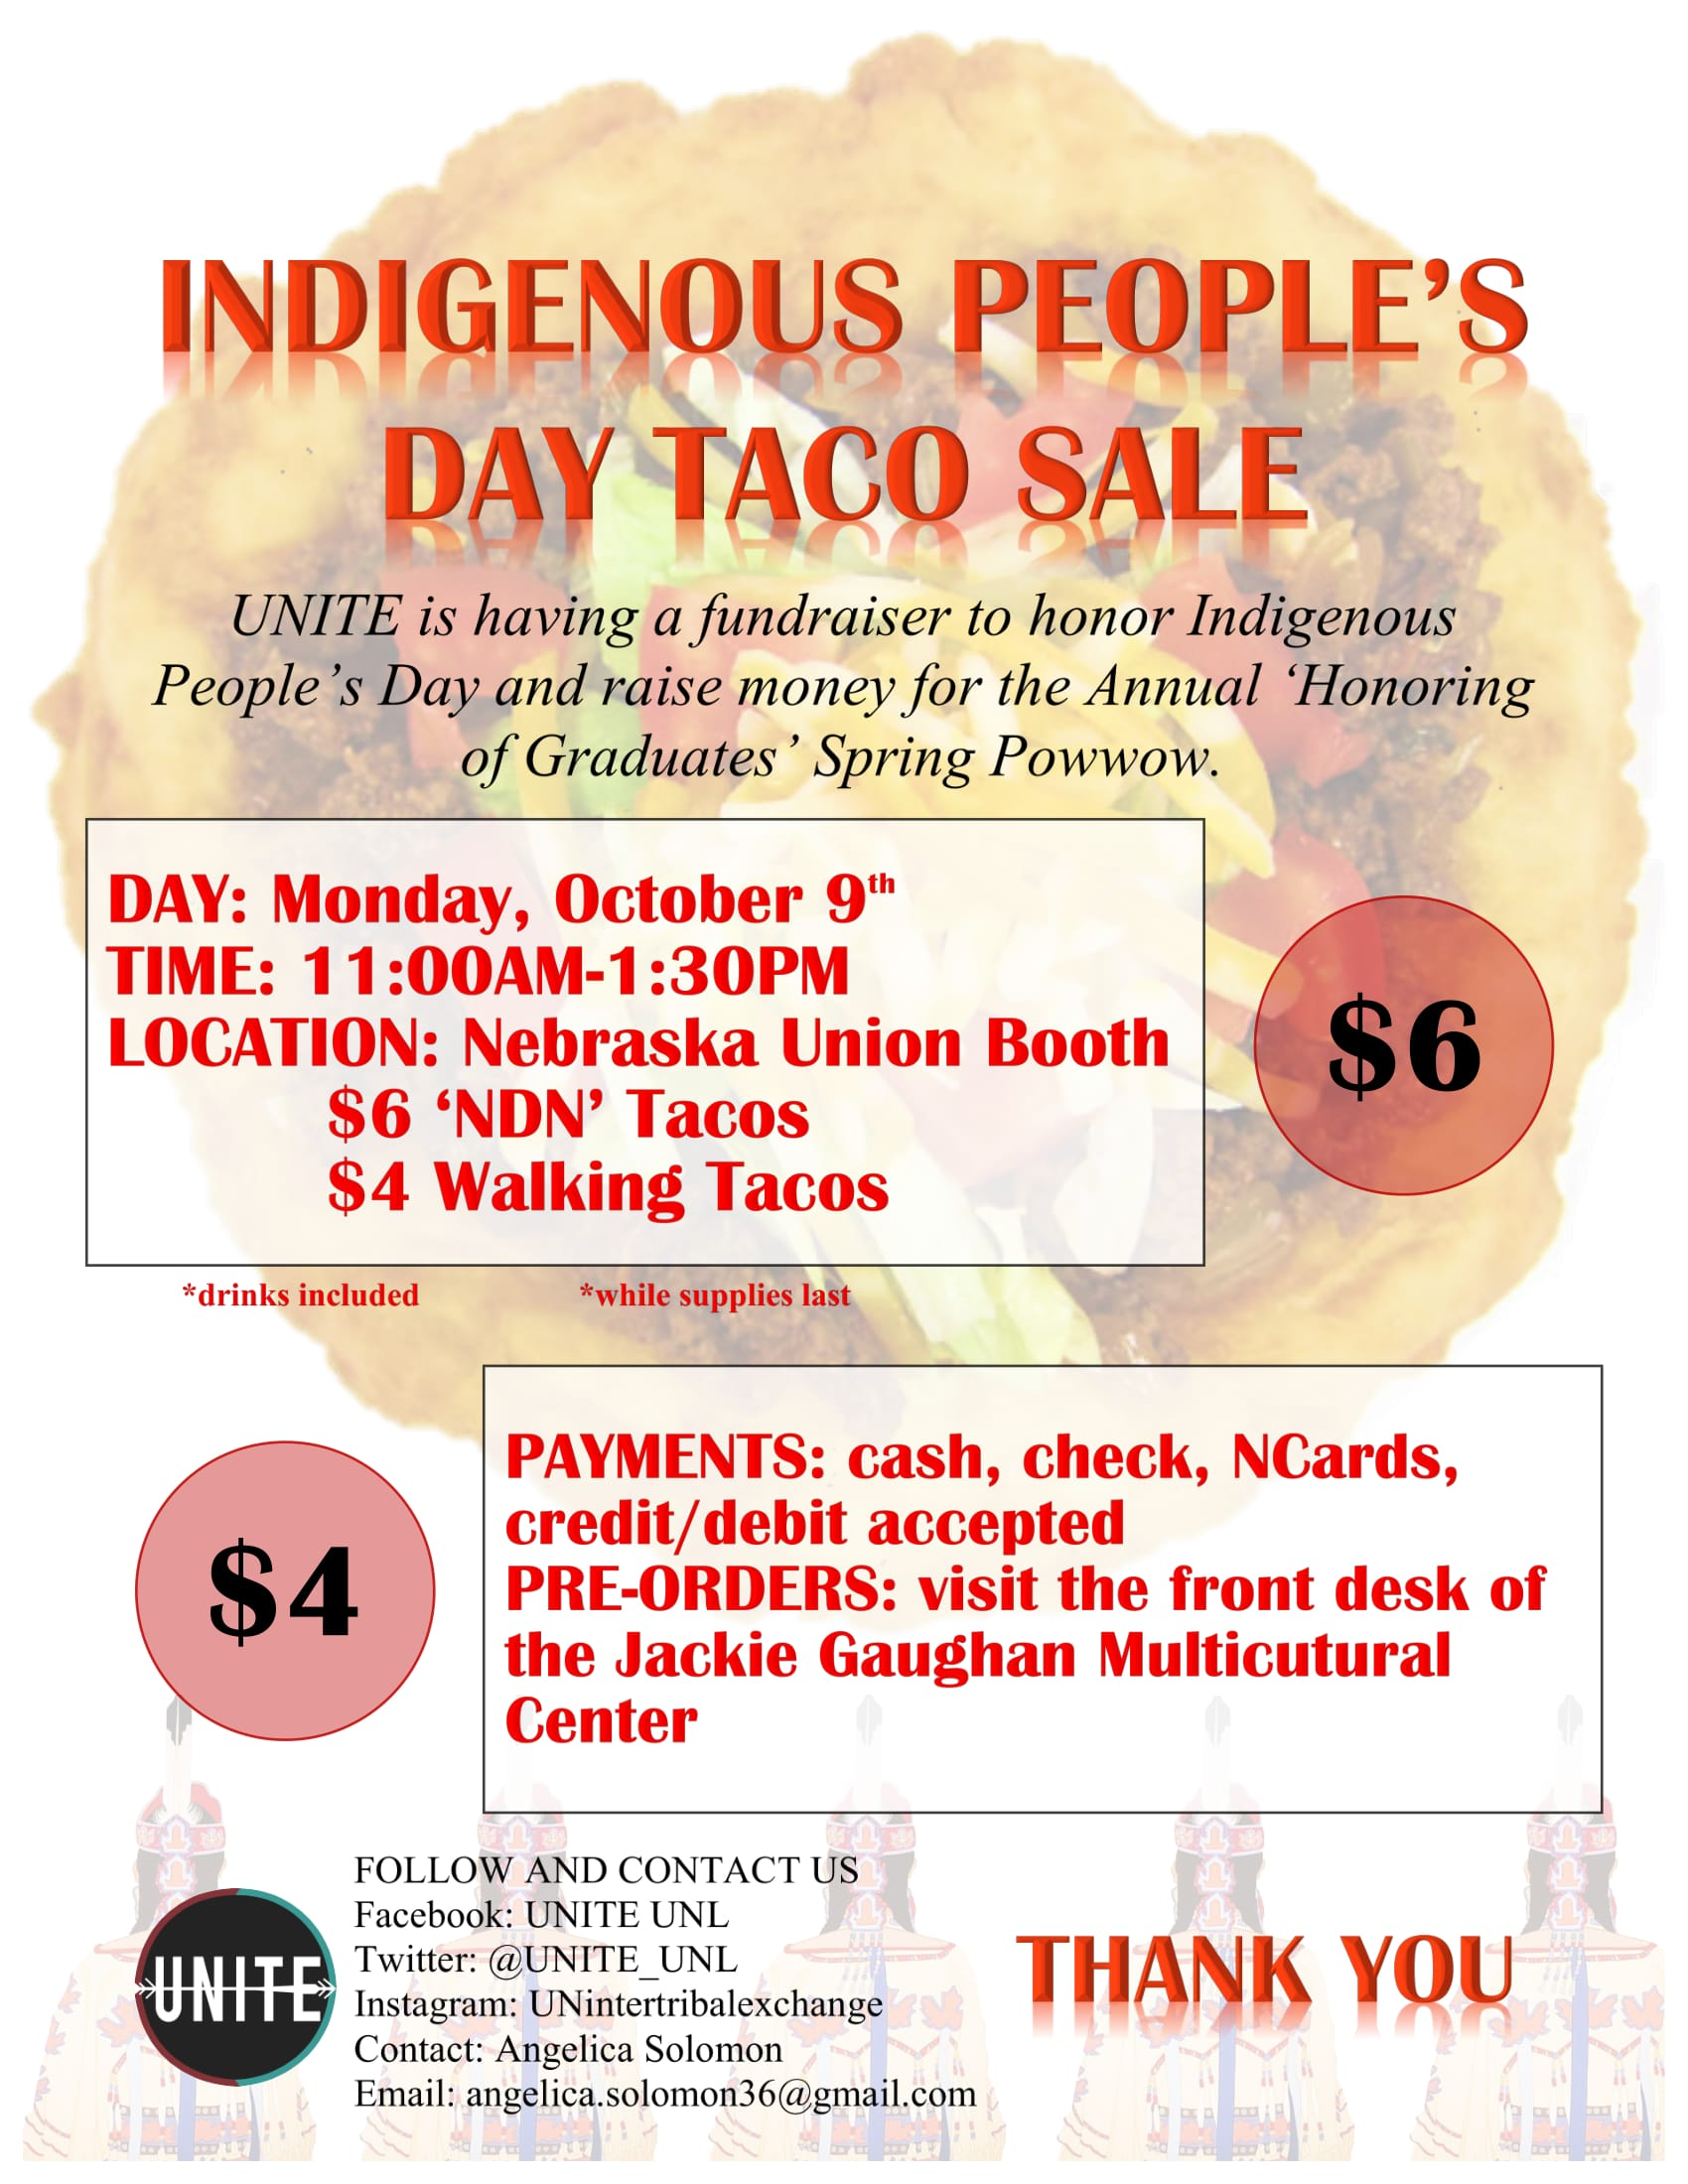 Indigenous People's Day Taco Sale flyer